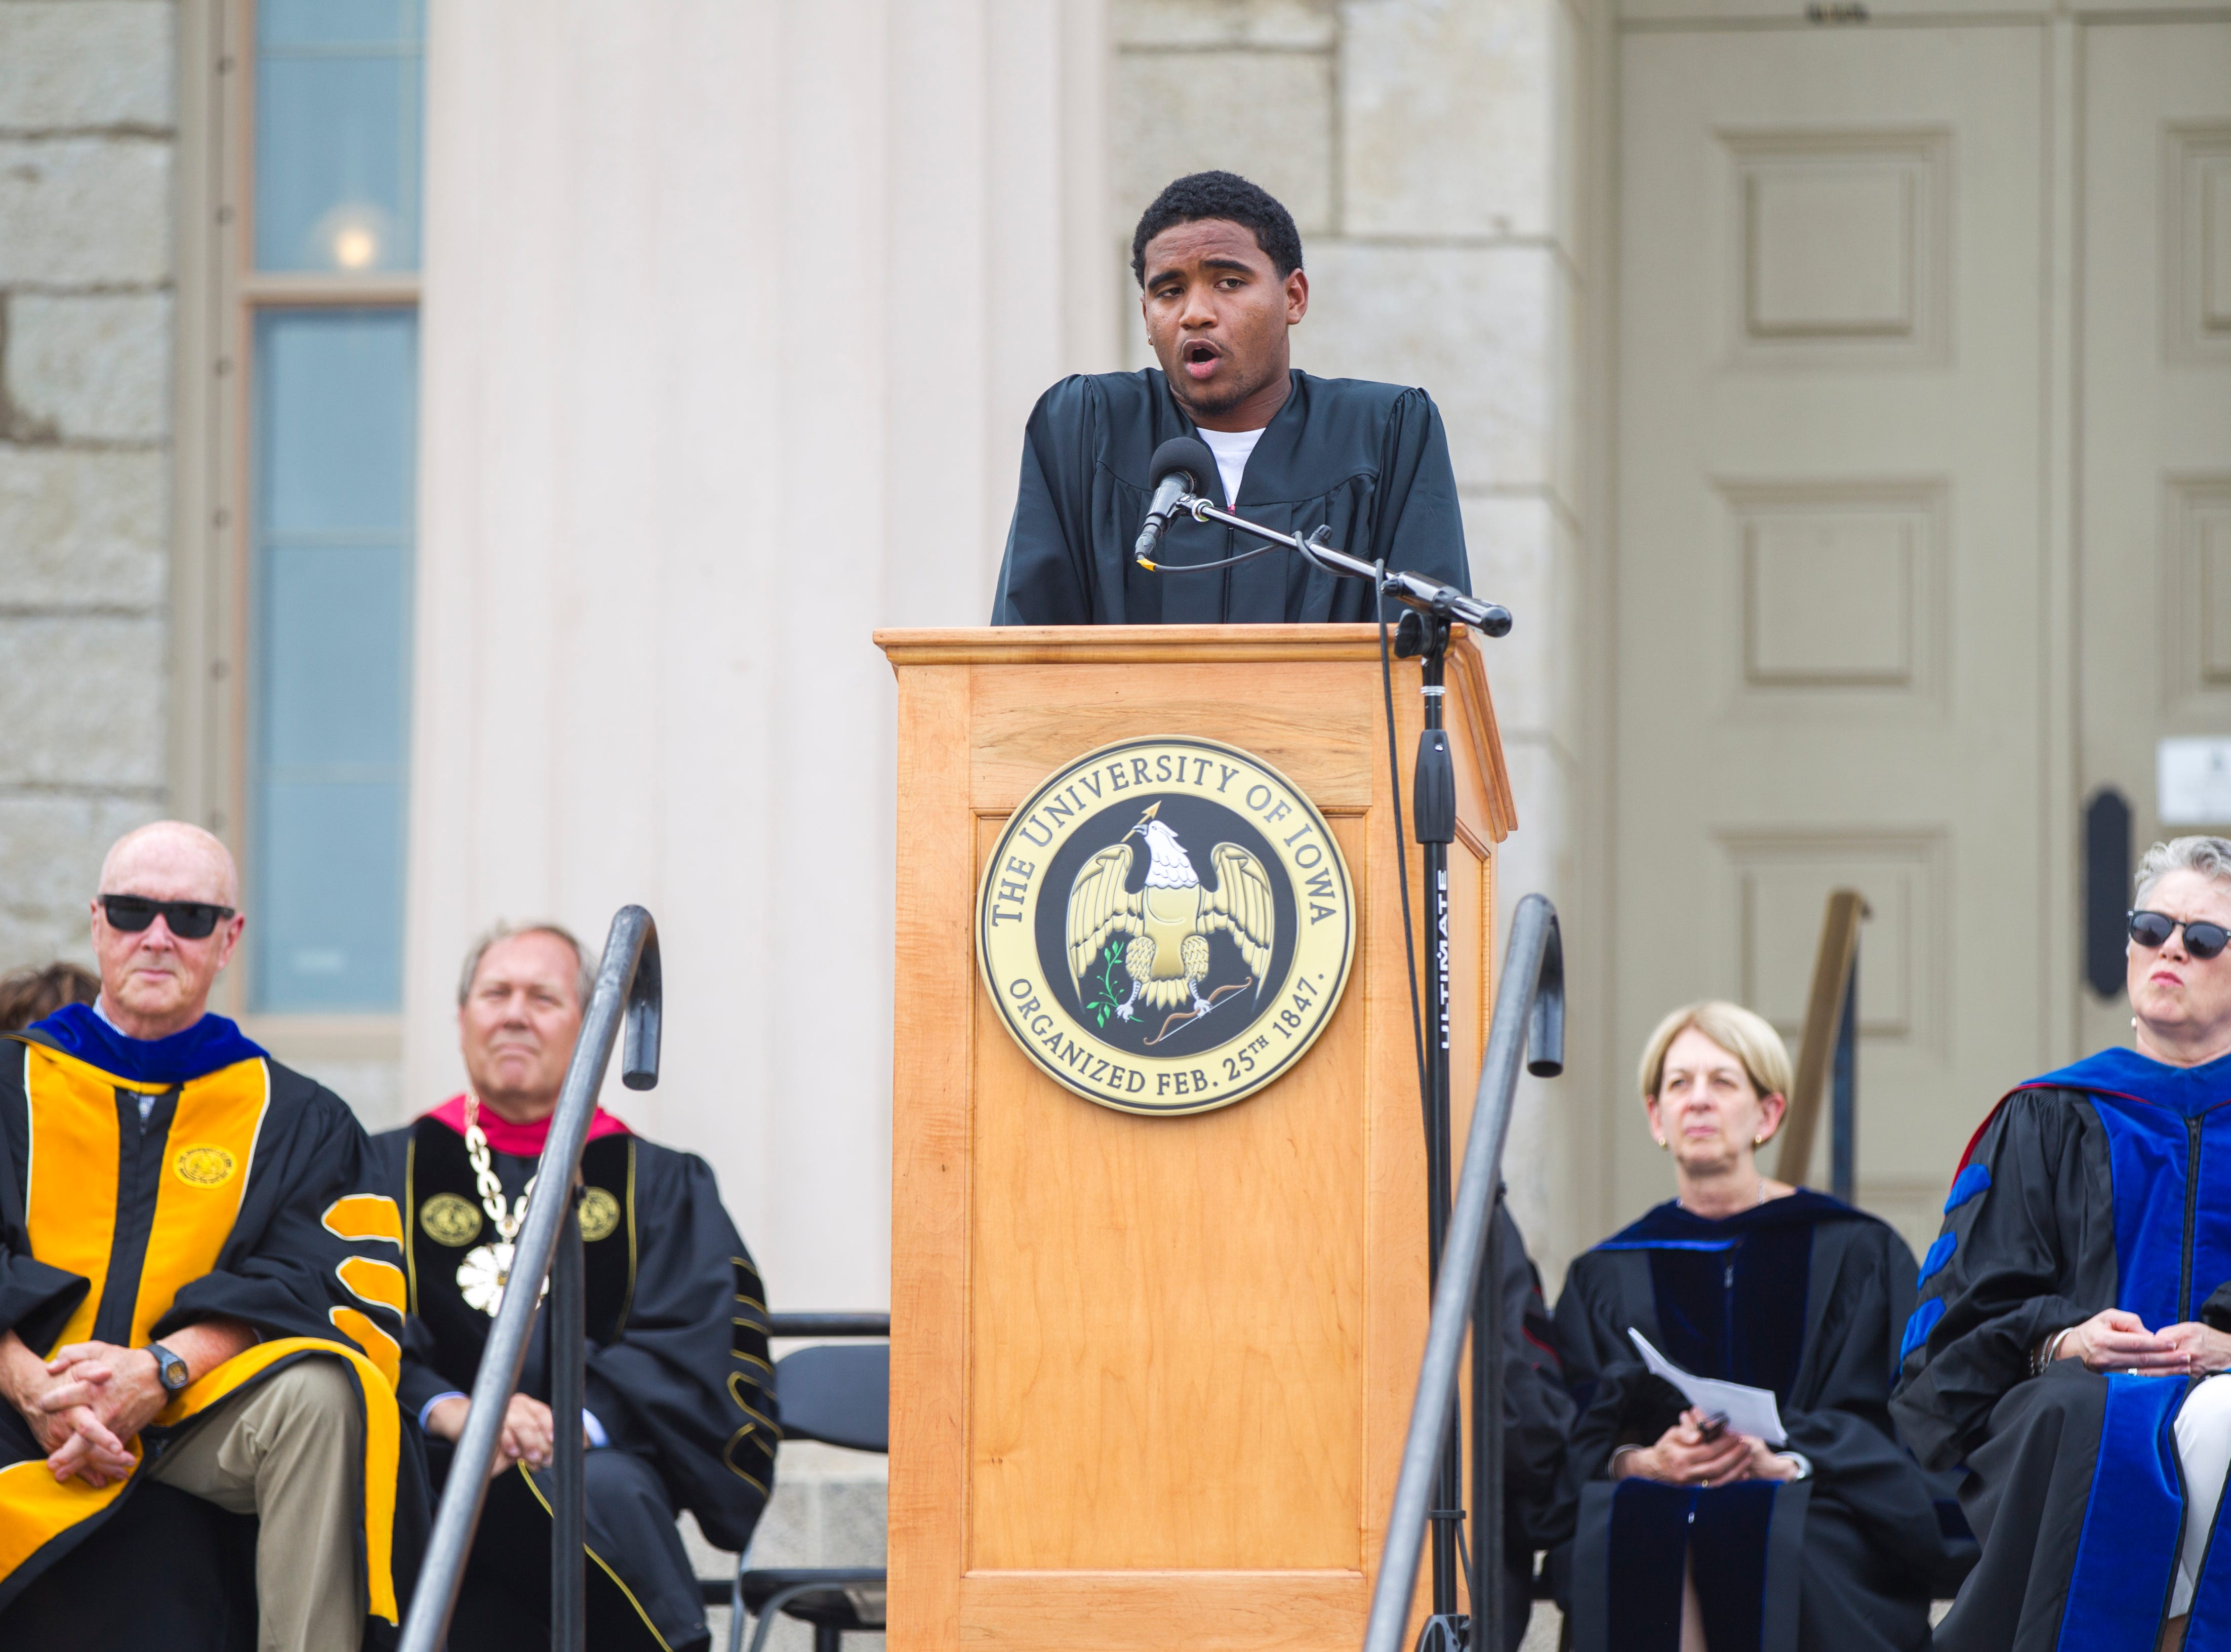 Darius Christiansen, of New Orleans, speaks during the University of Iowa class of 2022 convocation on Sunday, Aug. 19, 2018, at the Pentacrest in Iowa City. Christiansen is a freshman studying creative writing and anthropology.